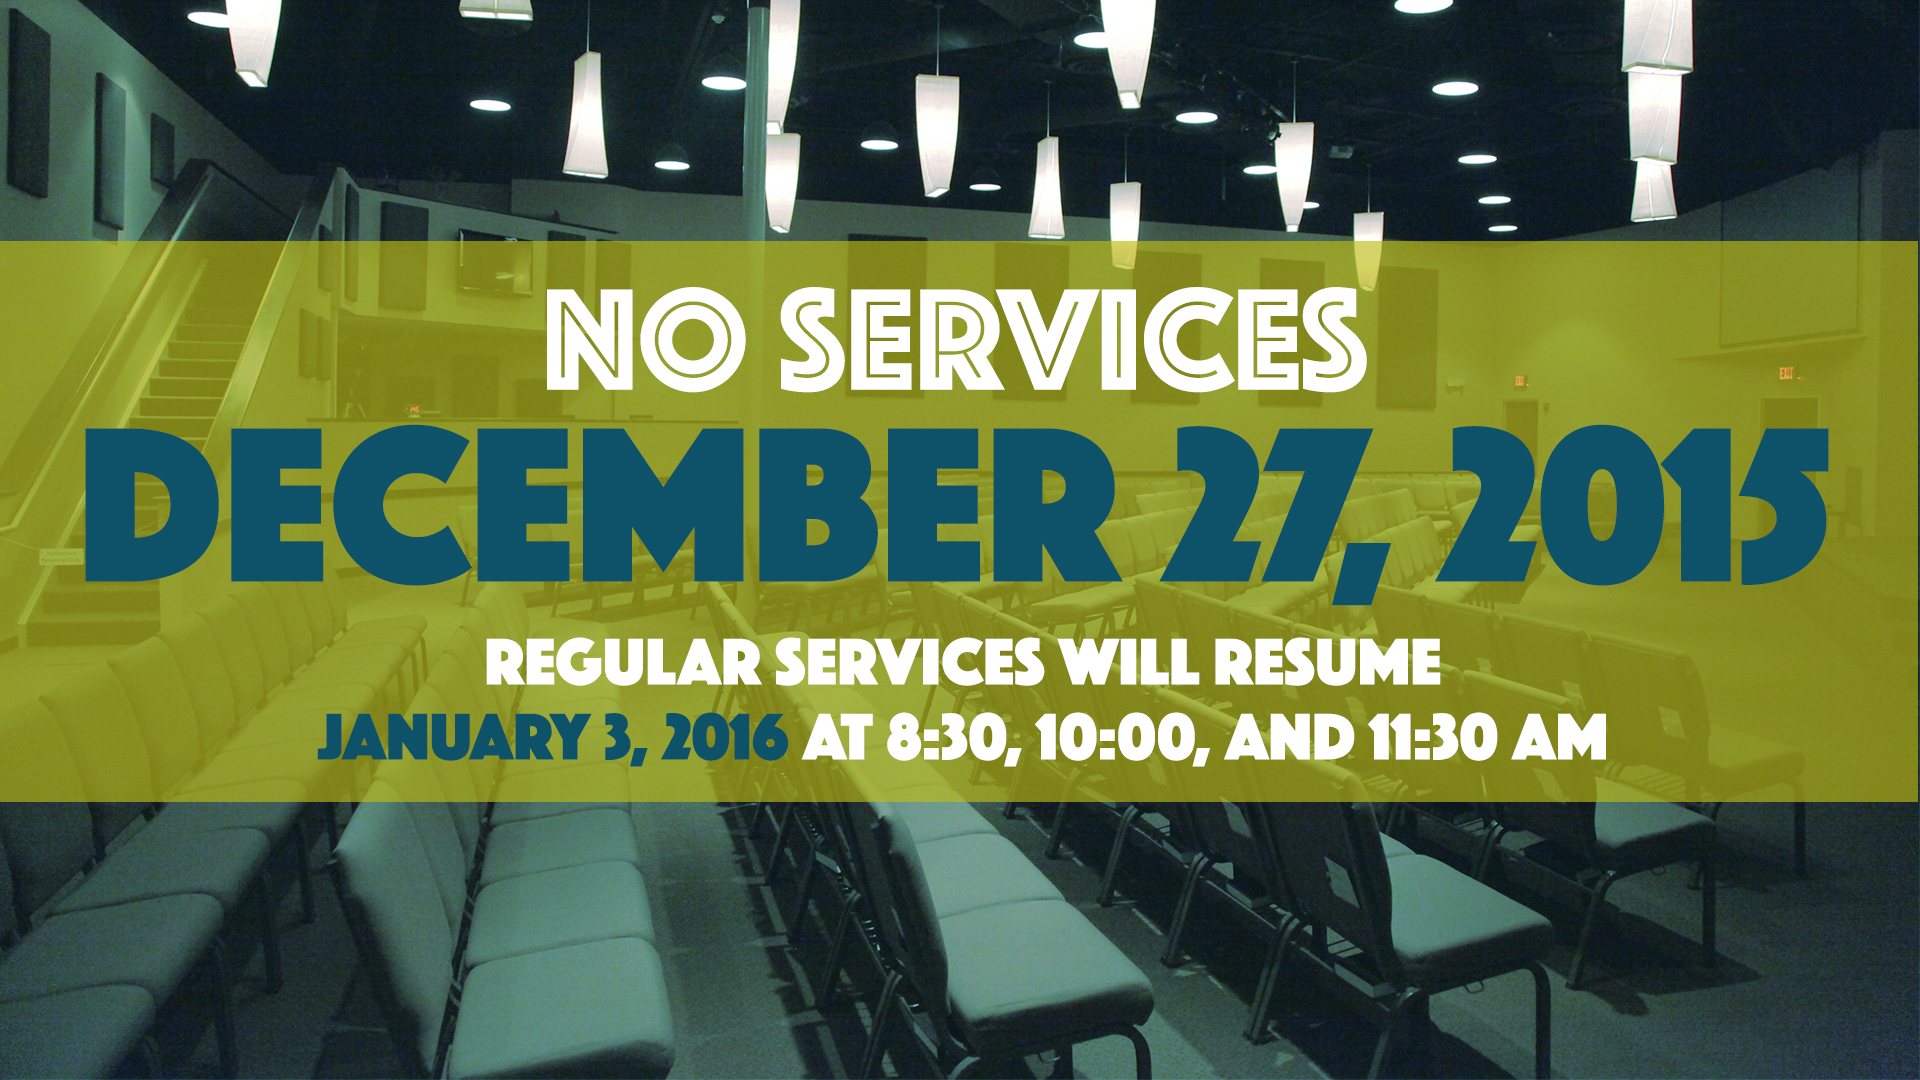 NO SERVICES DECEMBER 27, 2015   Regular services will resume January 3, 2016 at 8:30, 10:00 and 11:30AM.